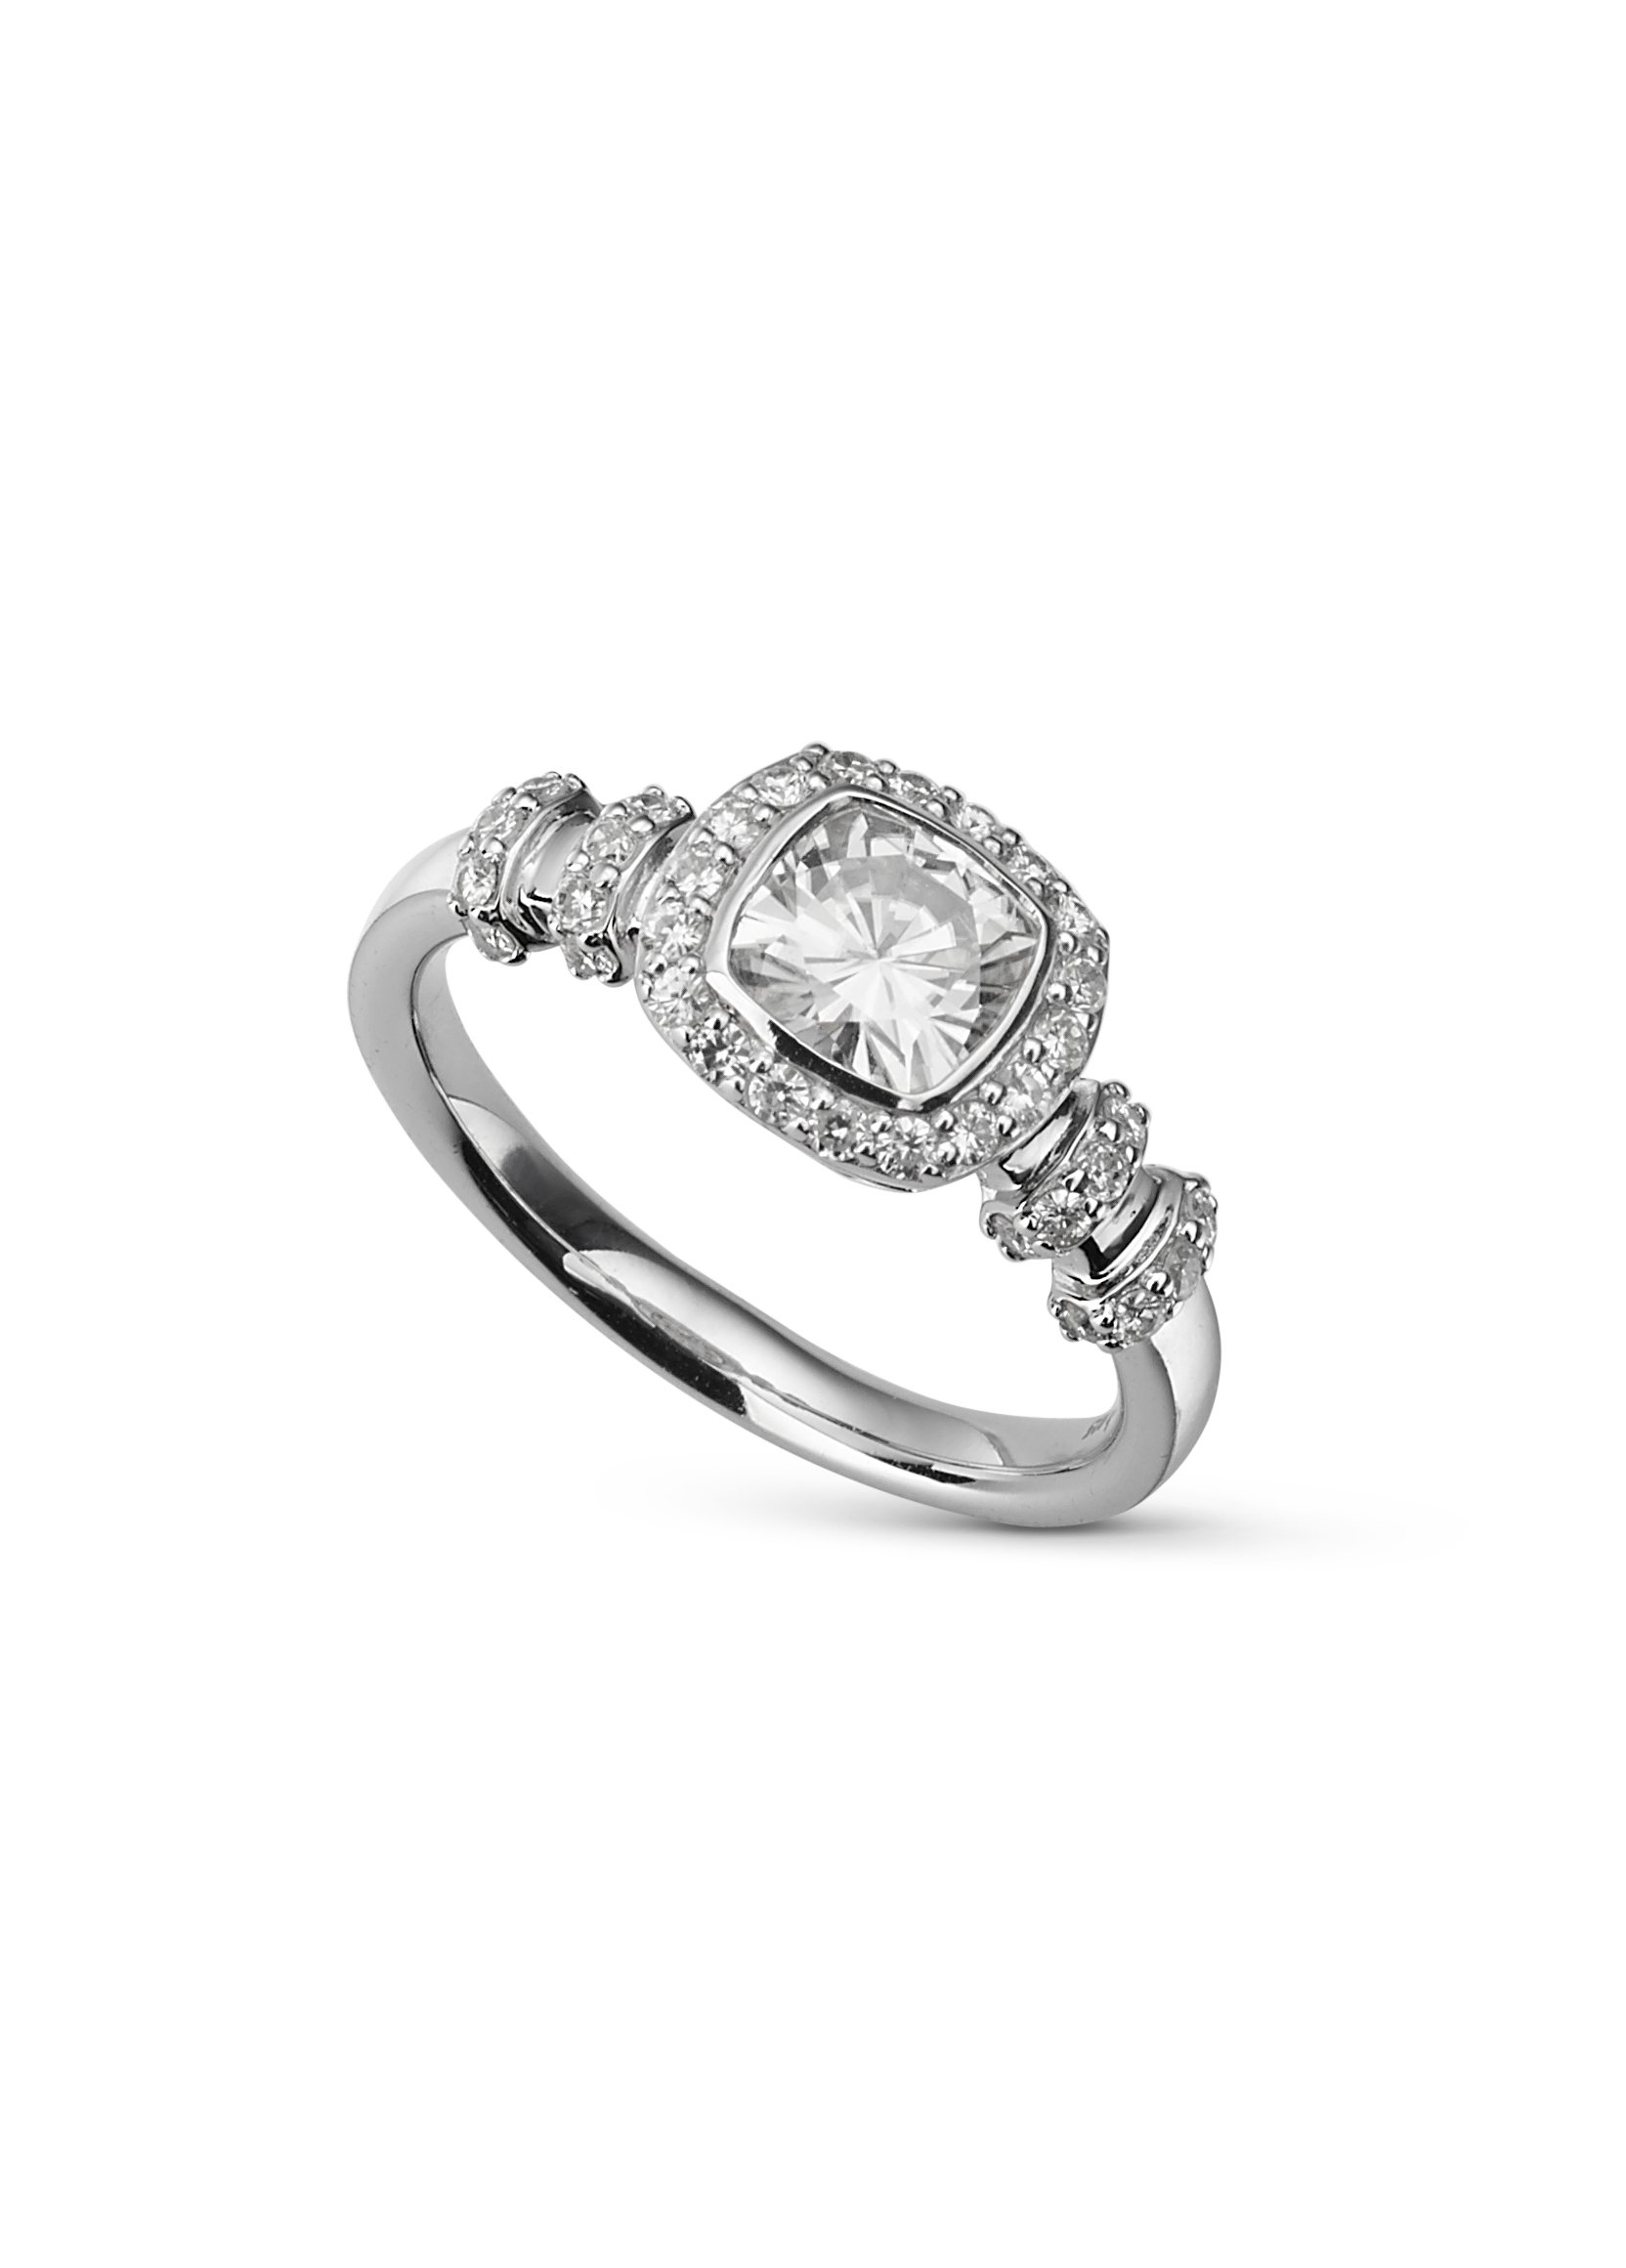 Cushion Cut Forever Classic Moissanite Halo Ring 1.48cttw DEW Size 8 By Charles & Colvard by Charles & Colvard